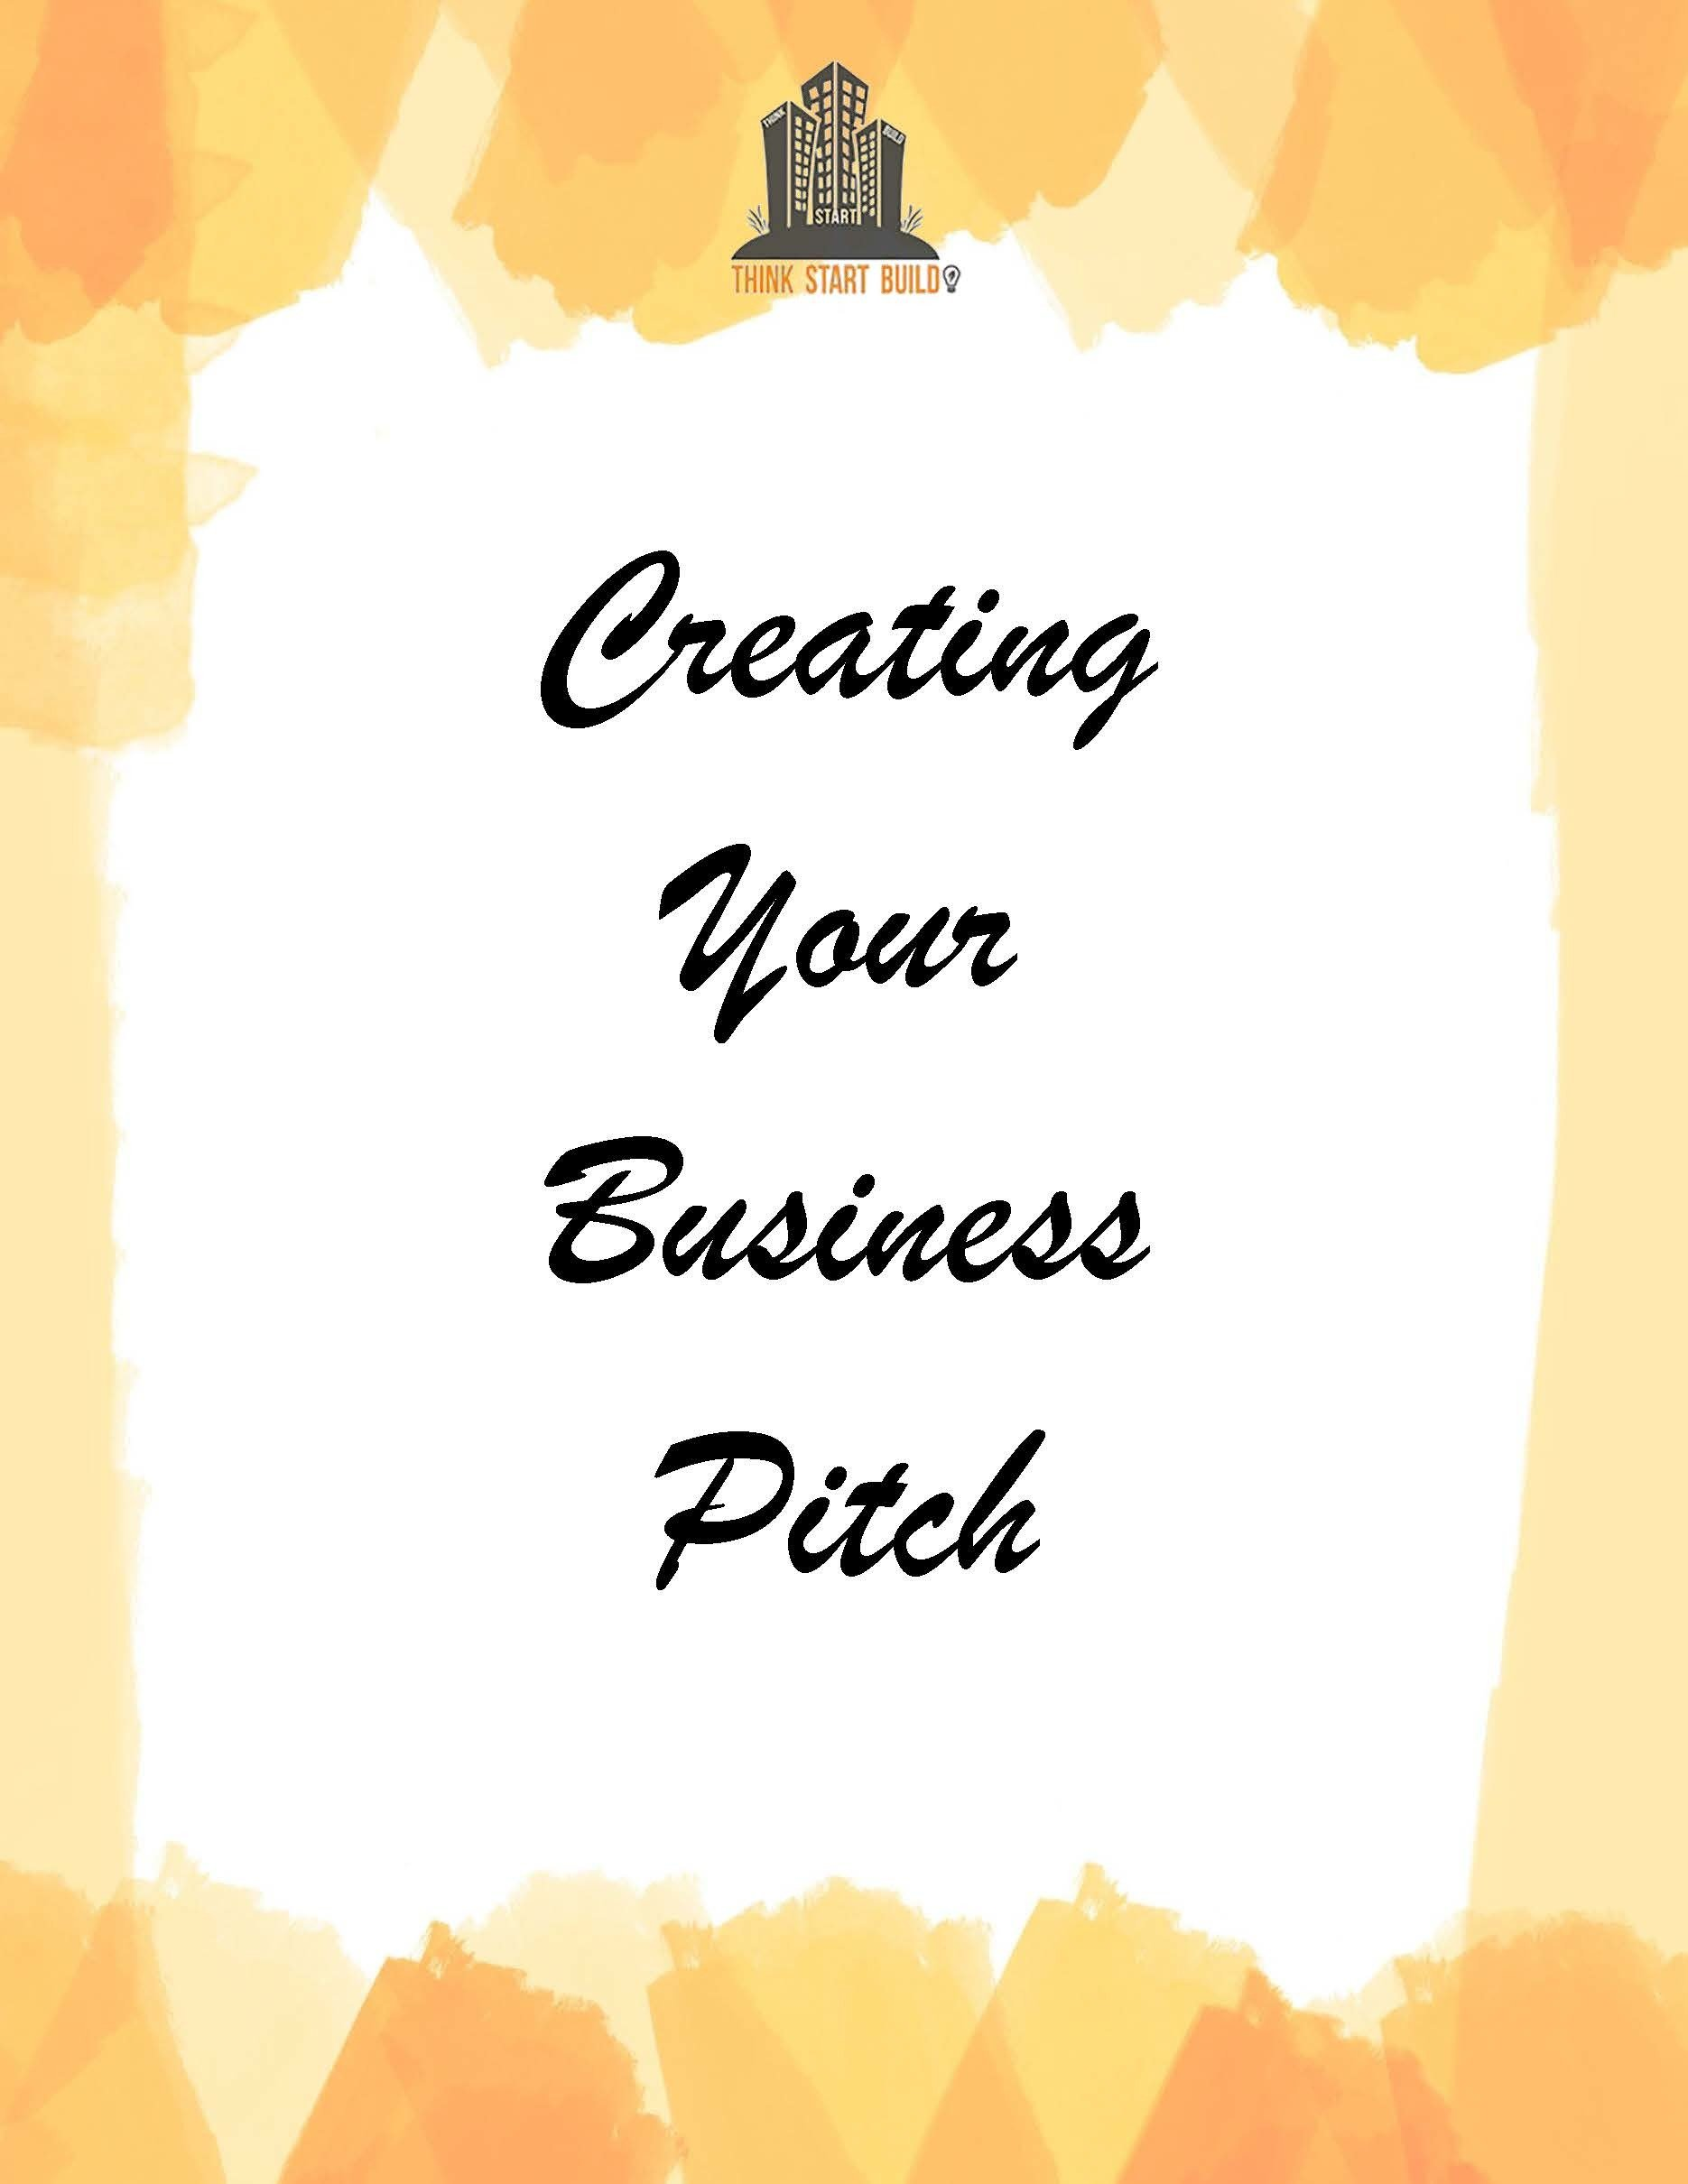 Make your Business Pitch p0001